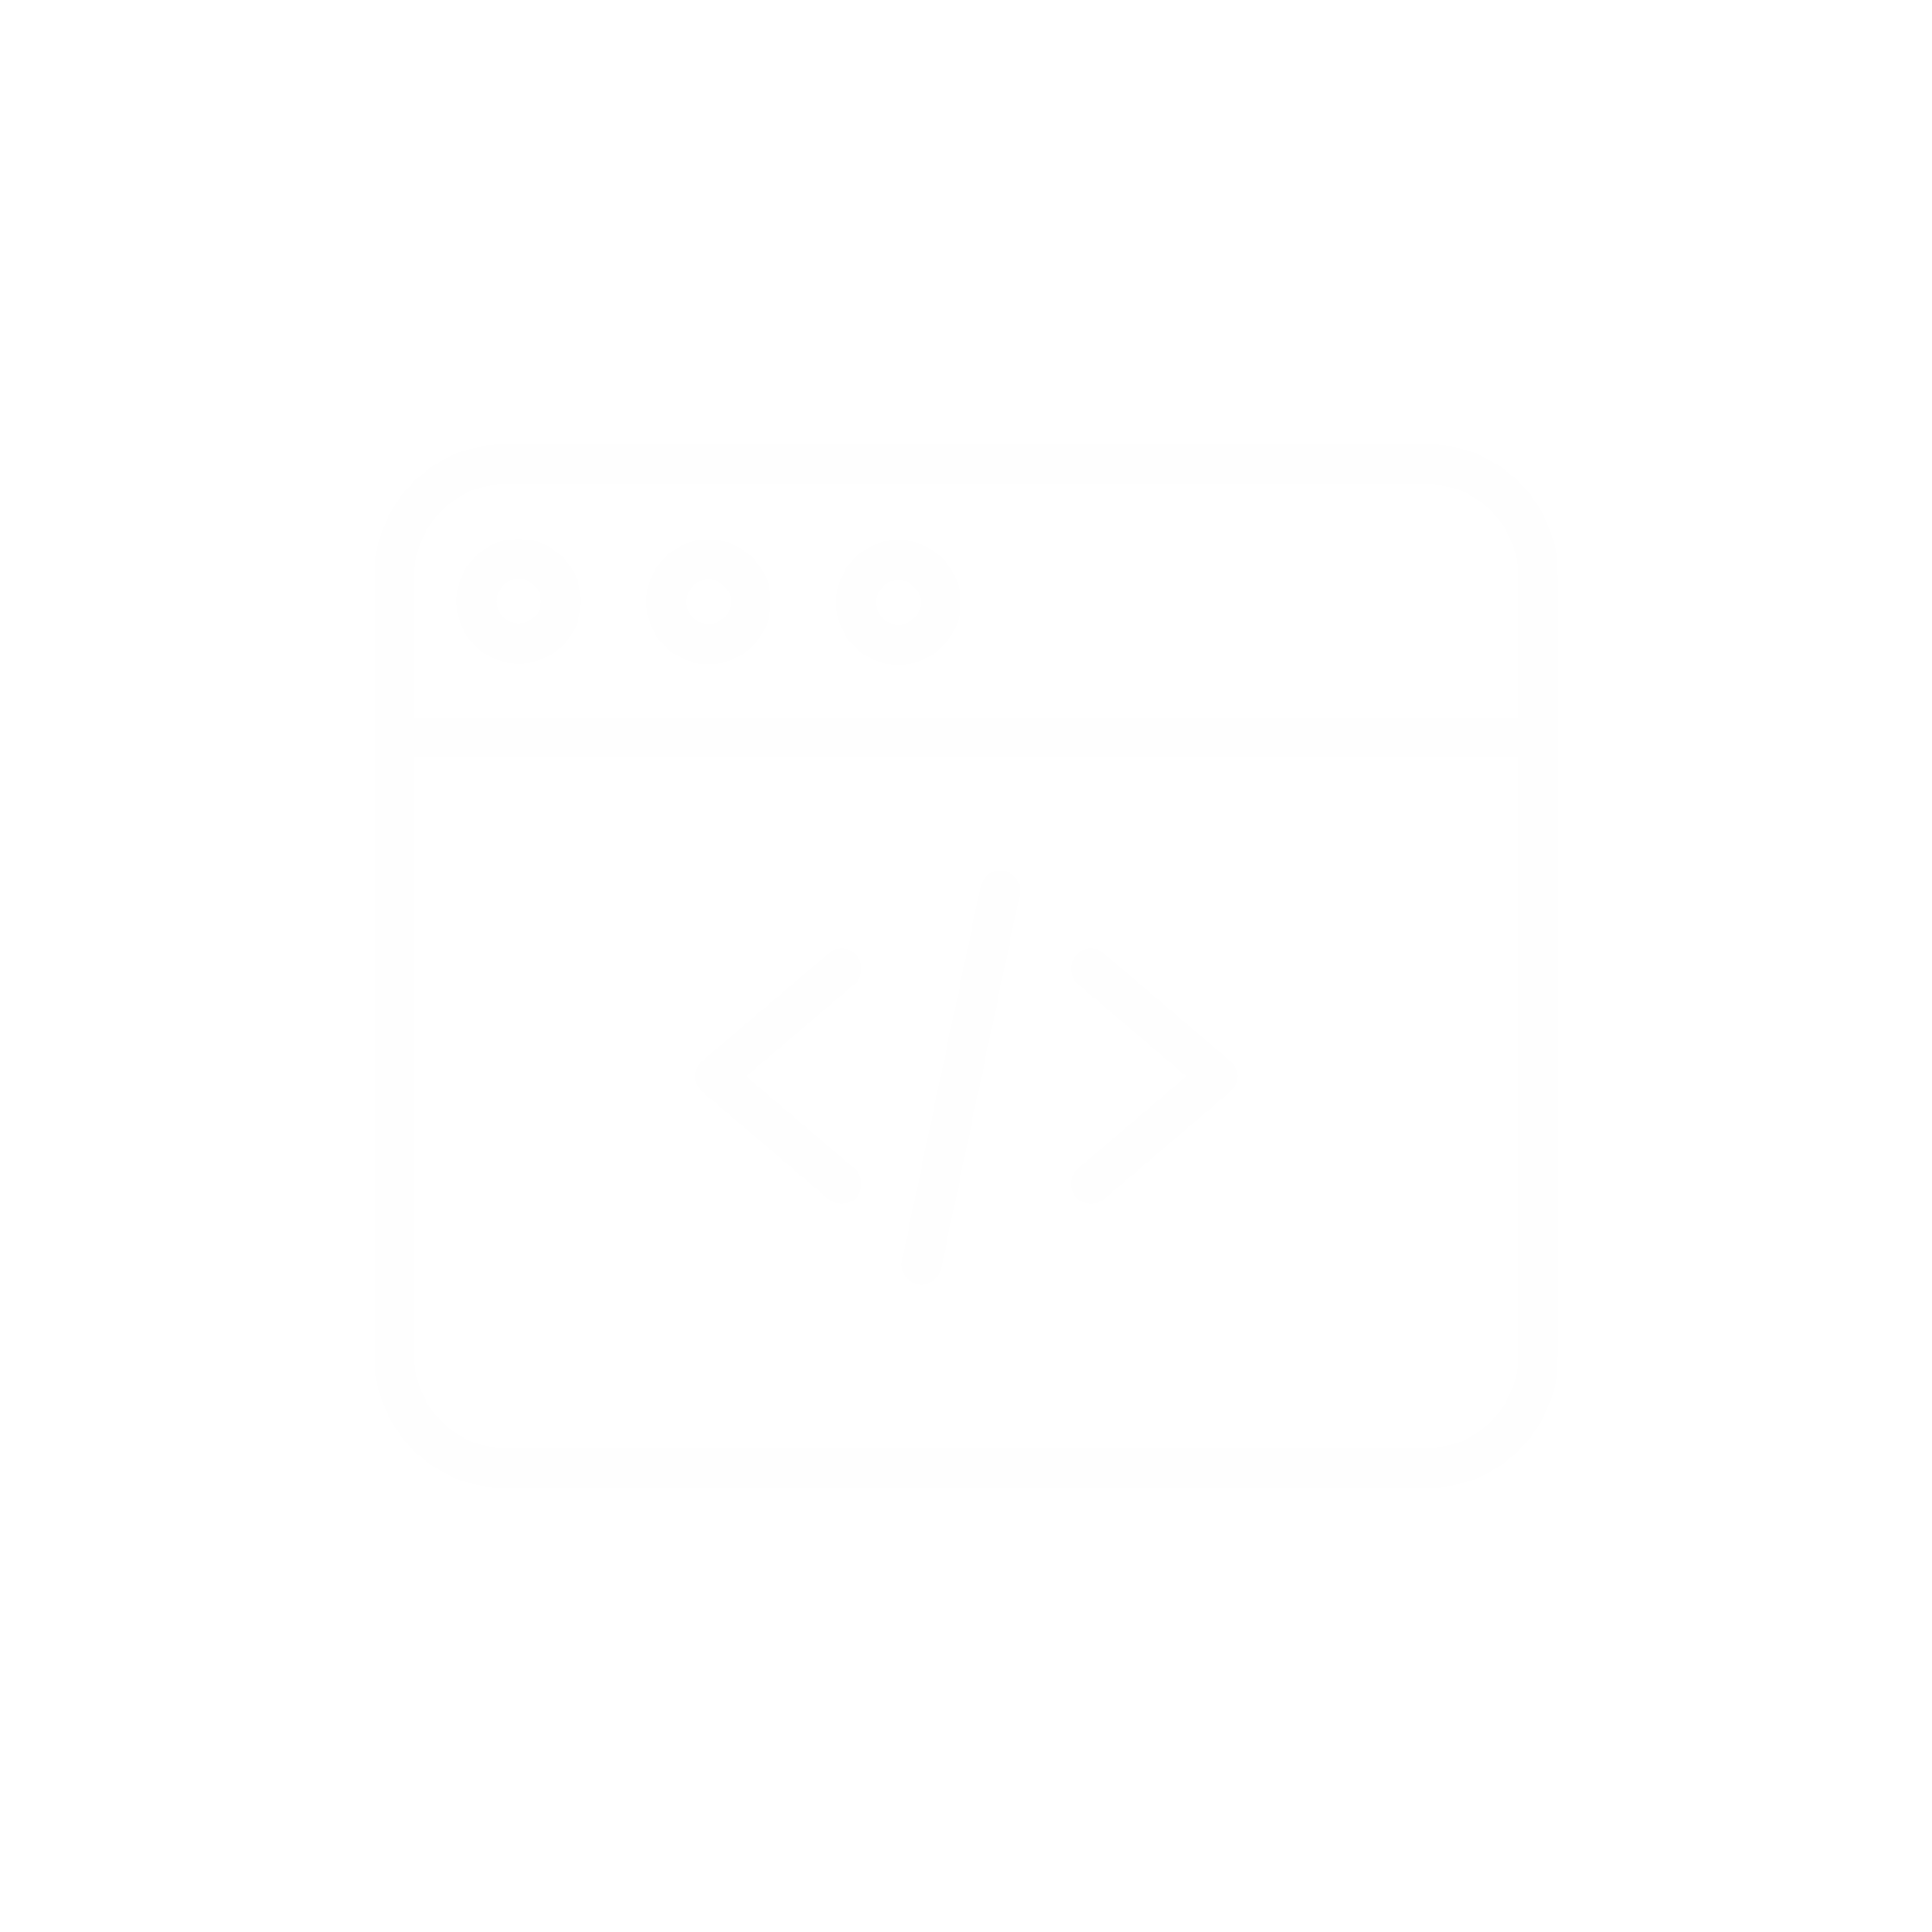 Basics of Coding icon